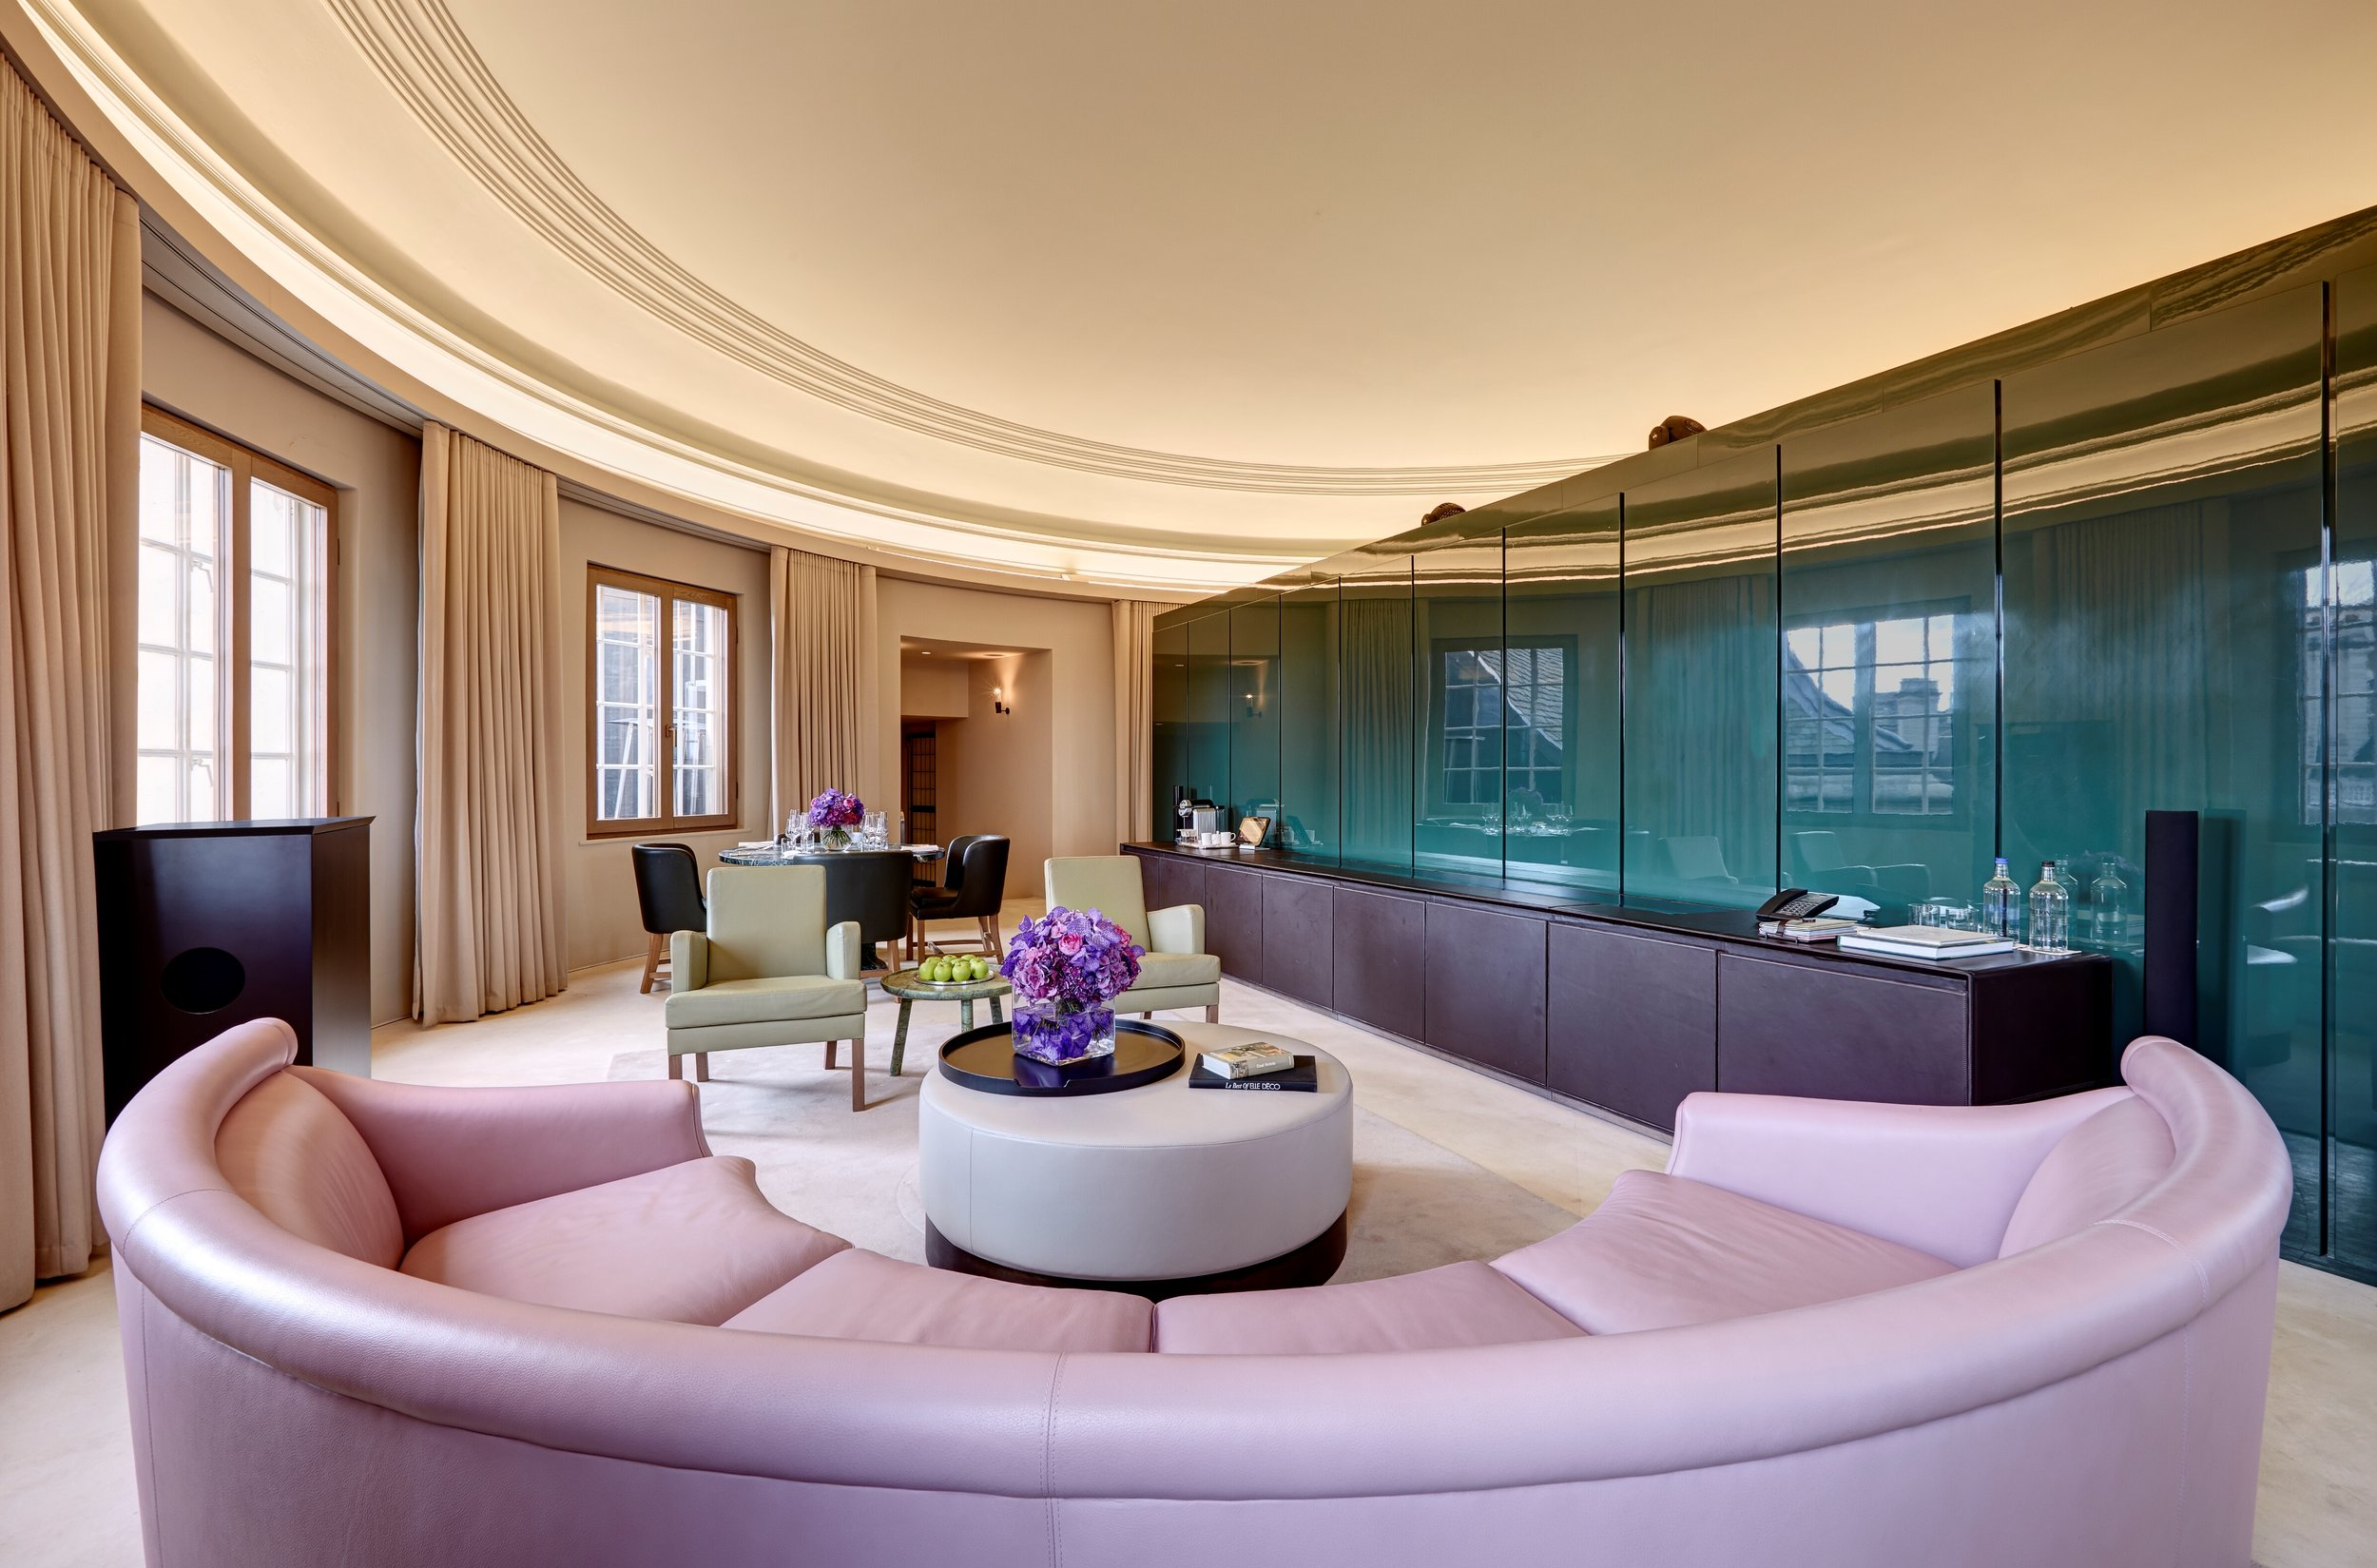 Hotel Cafe Royal - Dome Penthouse - Living Room 2.jpg